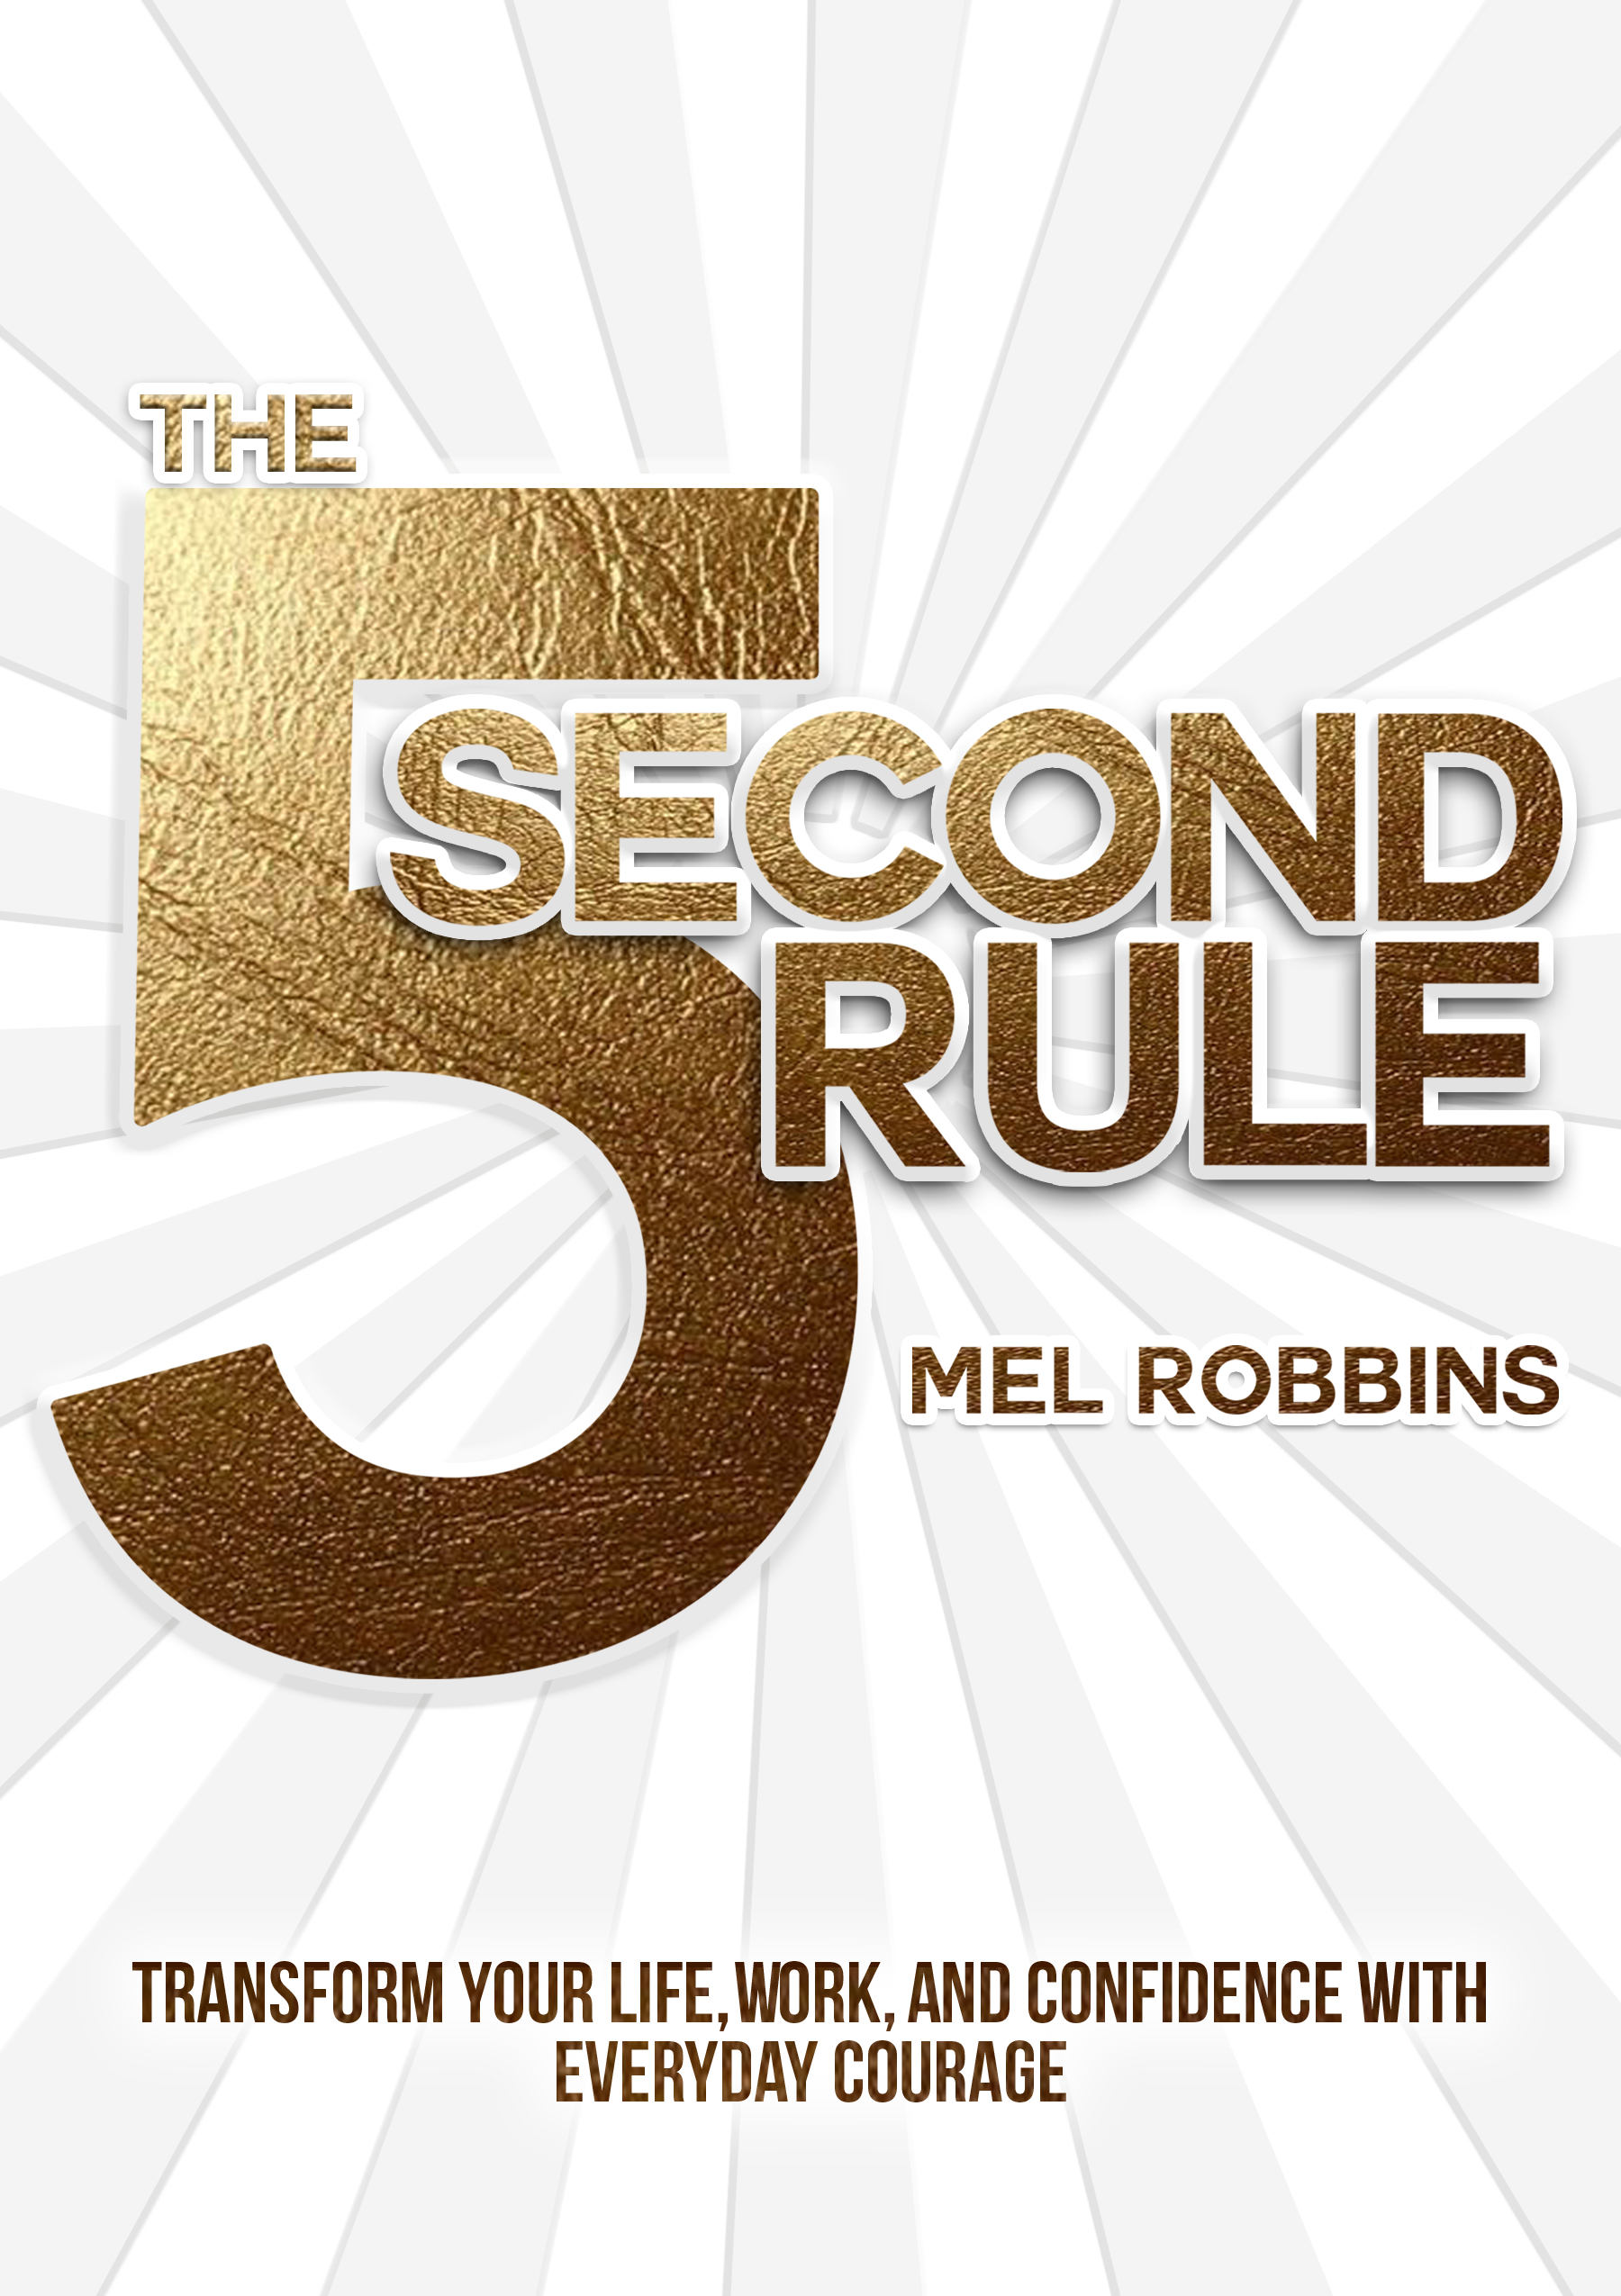 Cover Image of The 5 Second Rule: Transform Your Life, Work, and Confidence with Everyday Courage